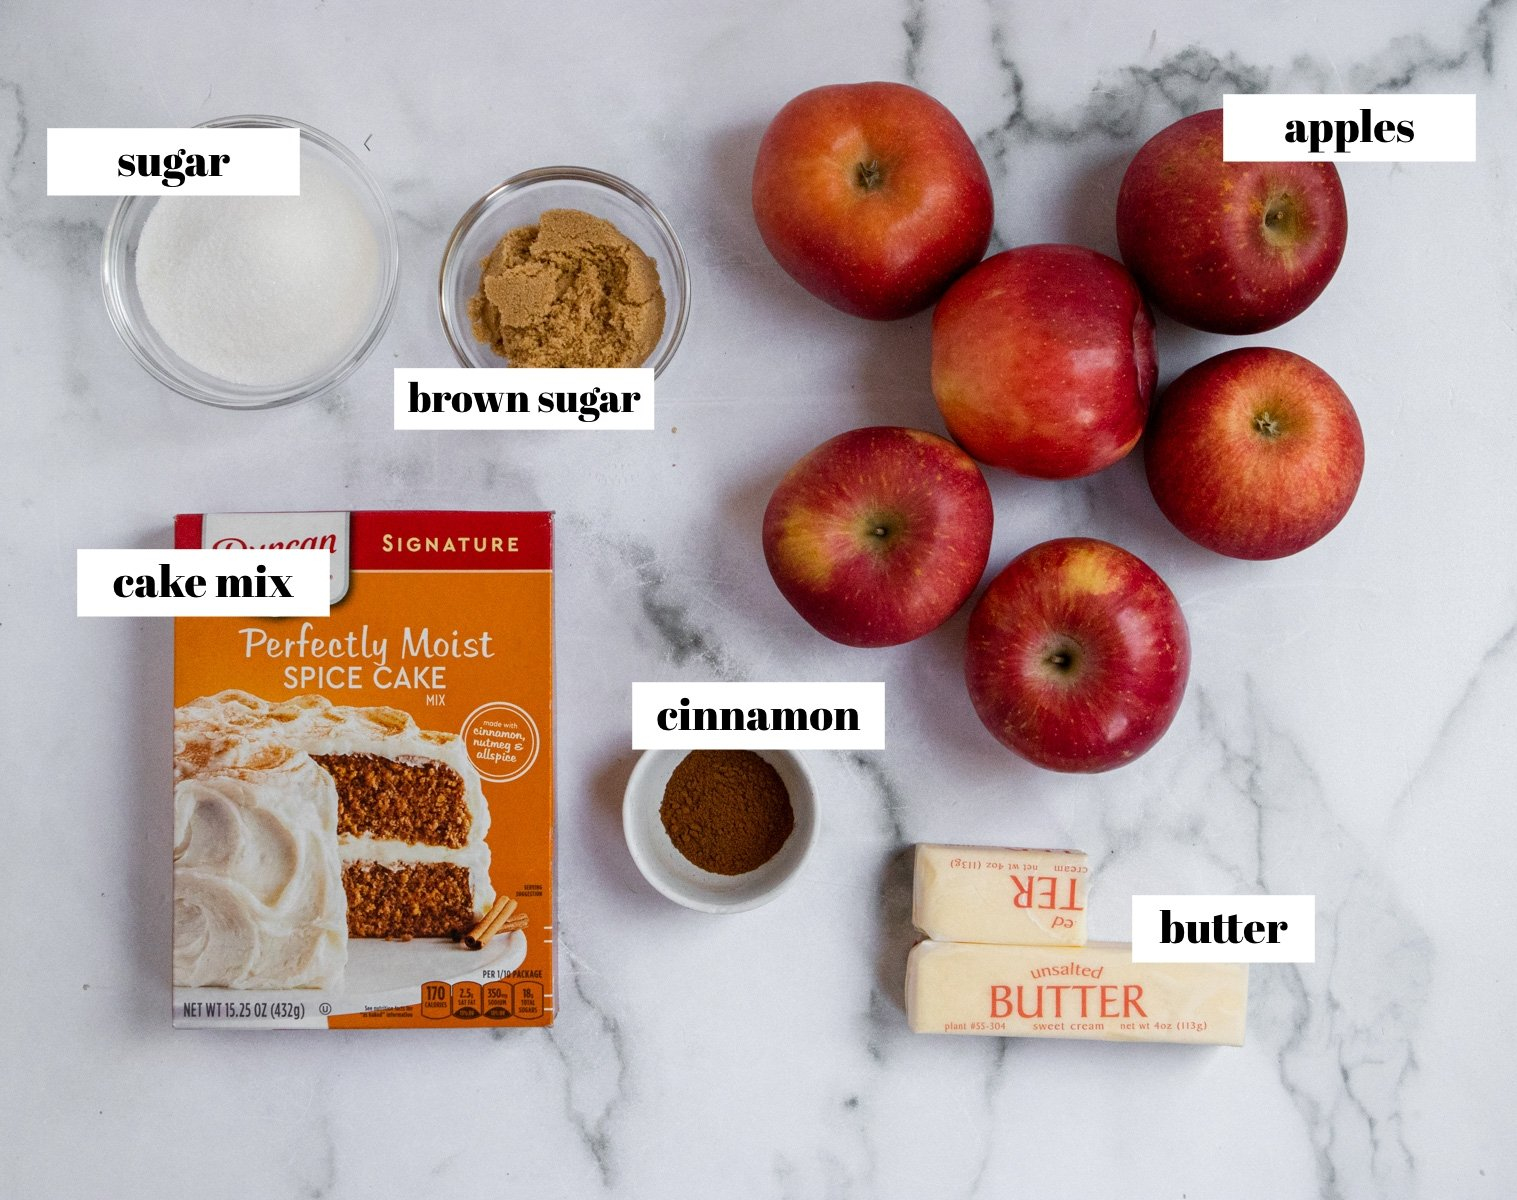 Apples, sugar, cinnamon and ingredients for recipe labeled on counter.